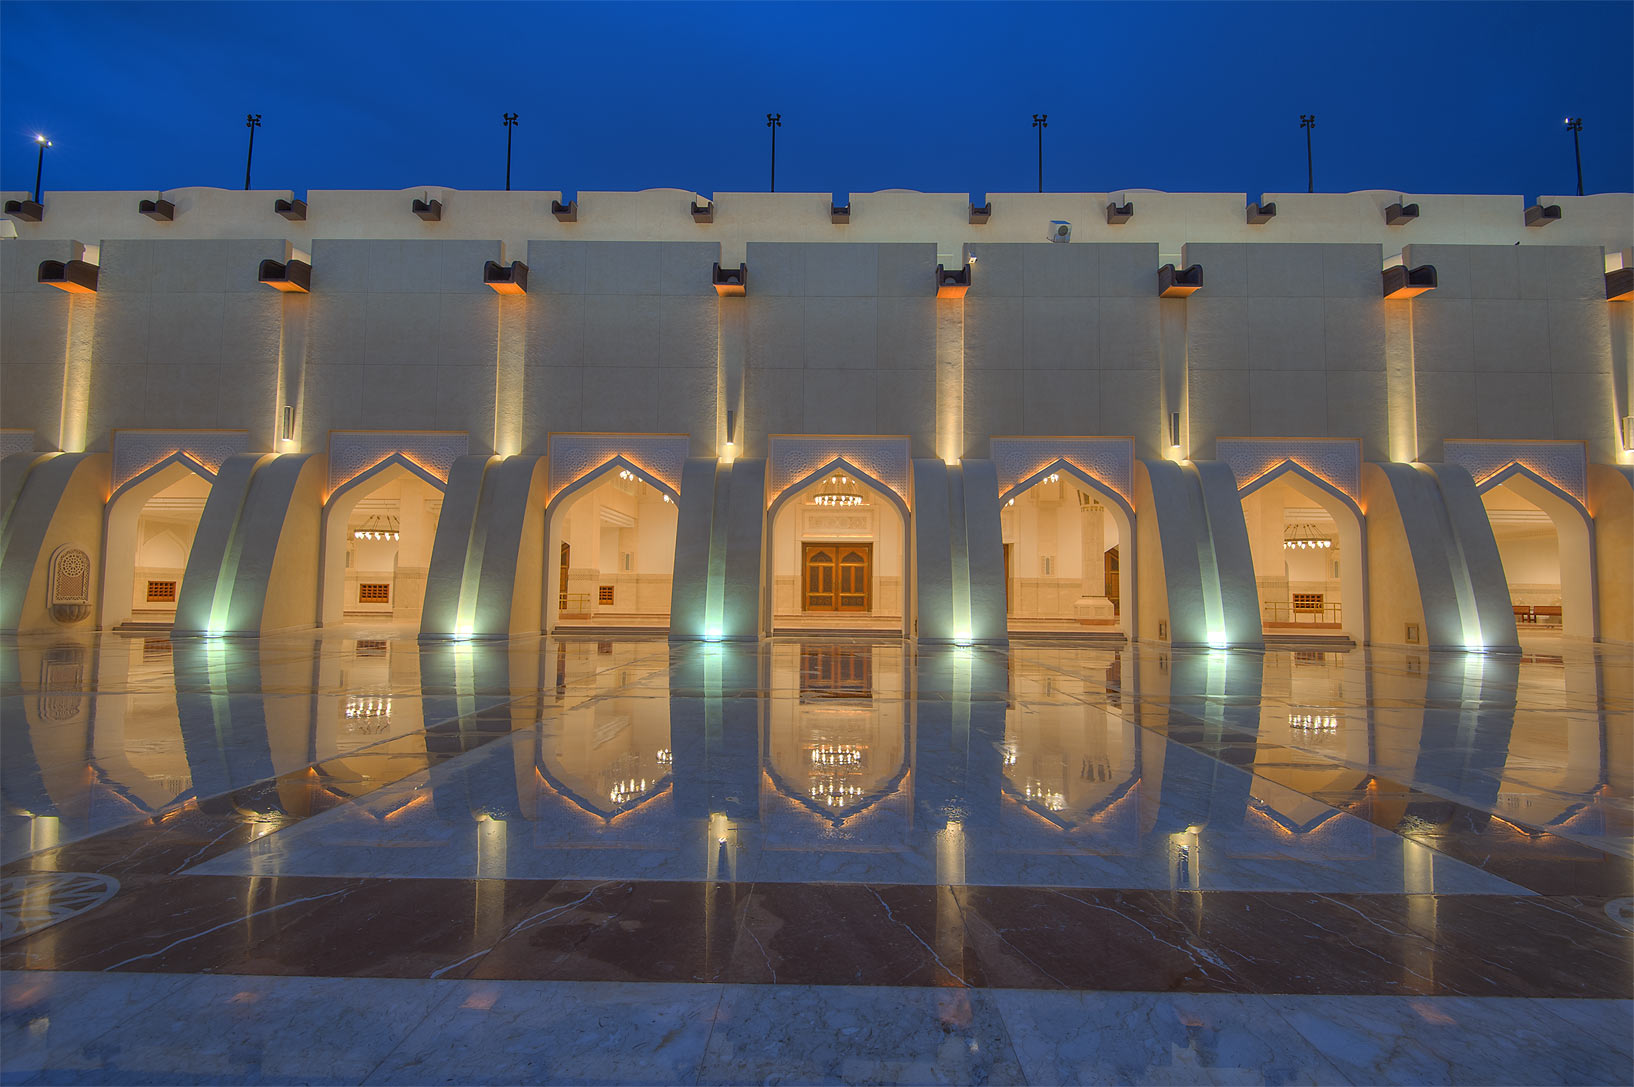 Gallery of women's courtyard of State Mosque...Ibn Abdul Wahhab Mosque). Doha, Qatar